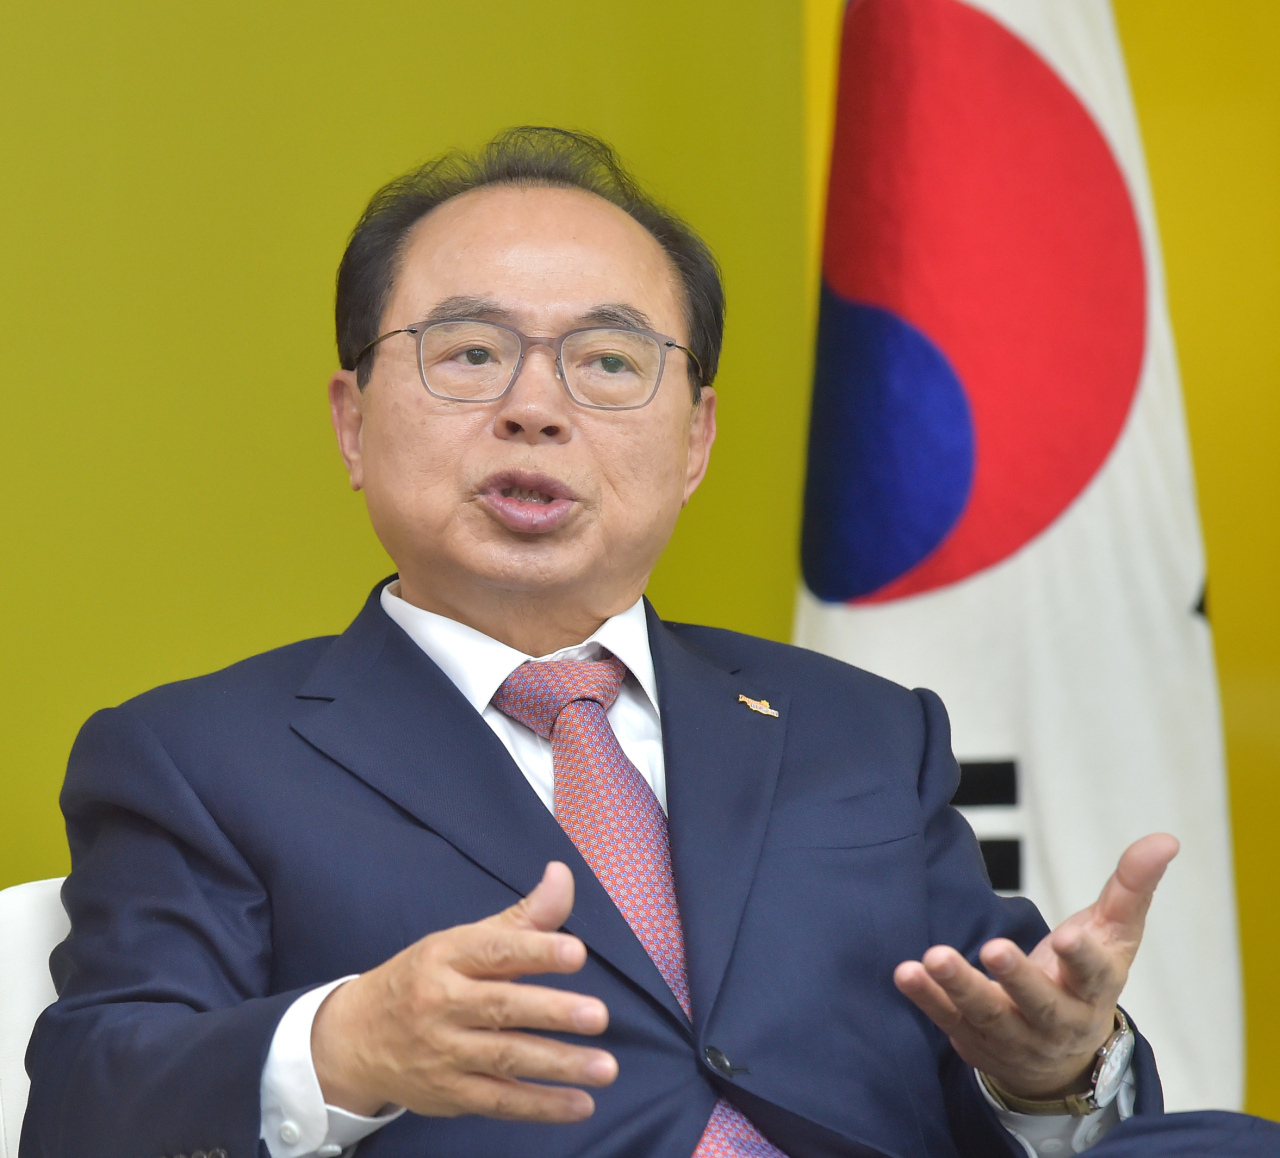 Former Busan Mayor Oh Keo-don speaks during a press interview in a photo provided by Busan Metropolitan Government. (Busan Metropolitan Government)